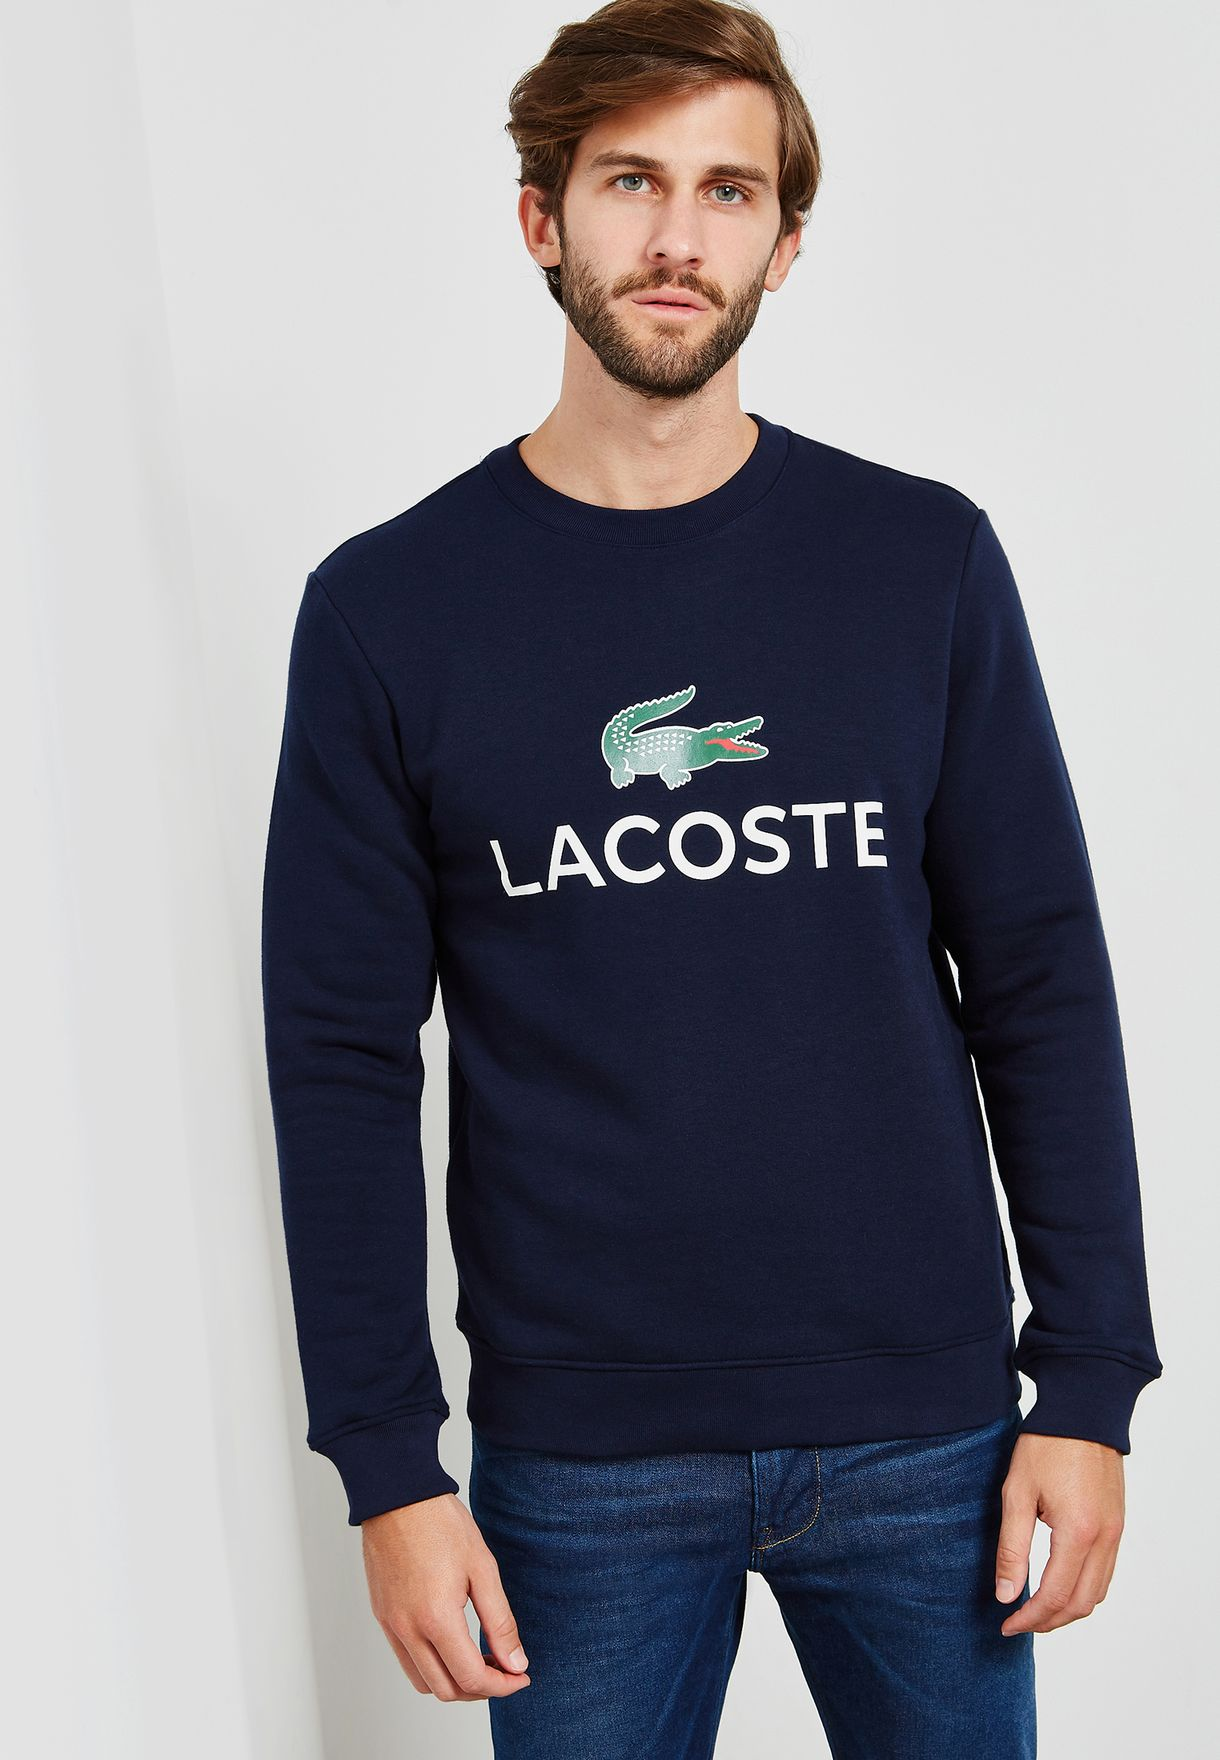 48820824e4ce Shop Lacoste navy Logo Sweatshirt SH0605-00 166 for Men in Saudi ...